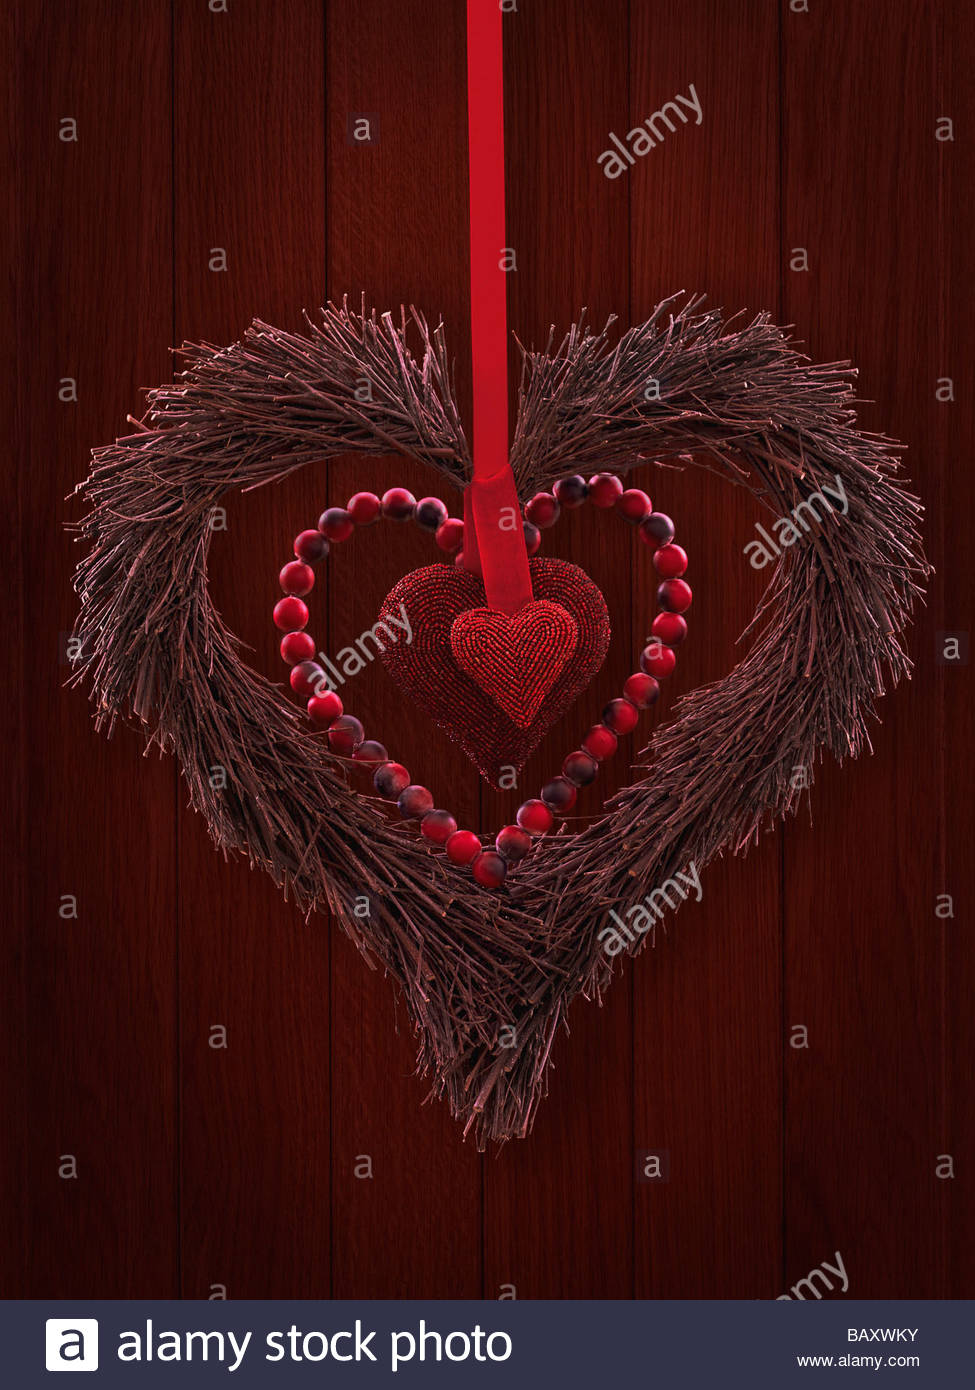 Red heart wreath hanging on door - Stock Image